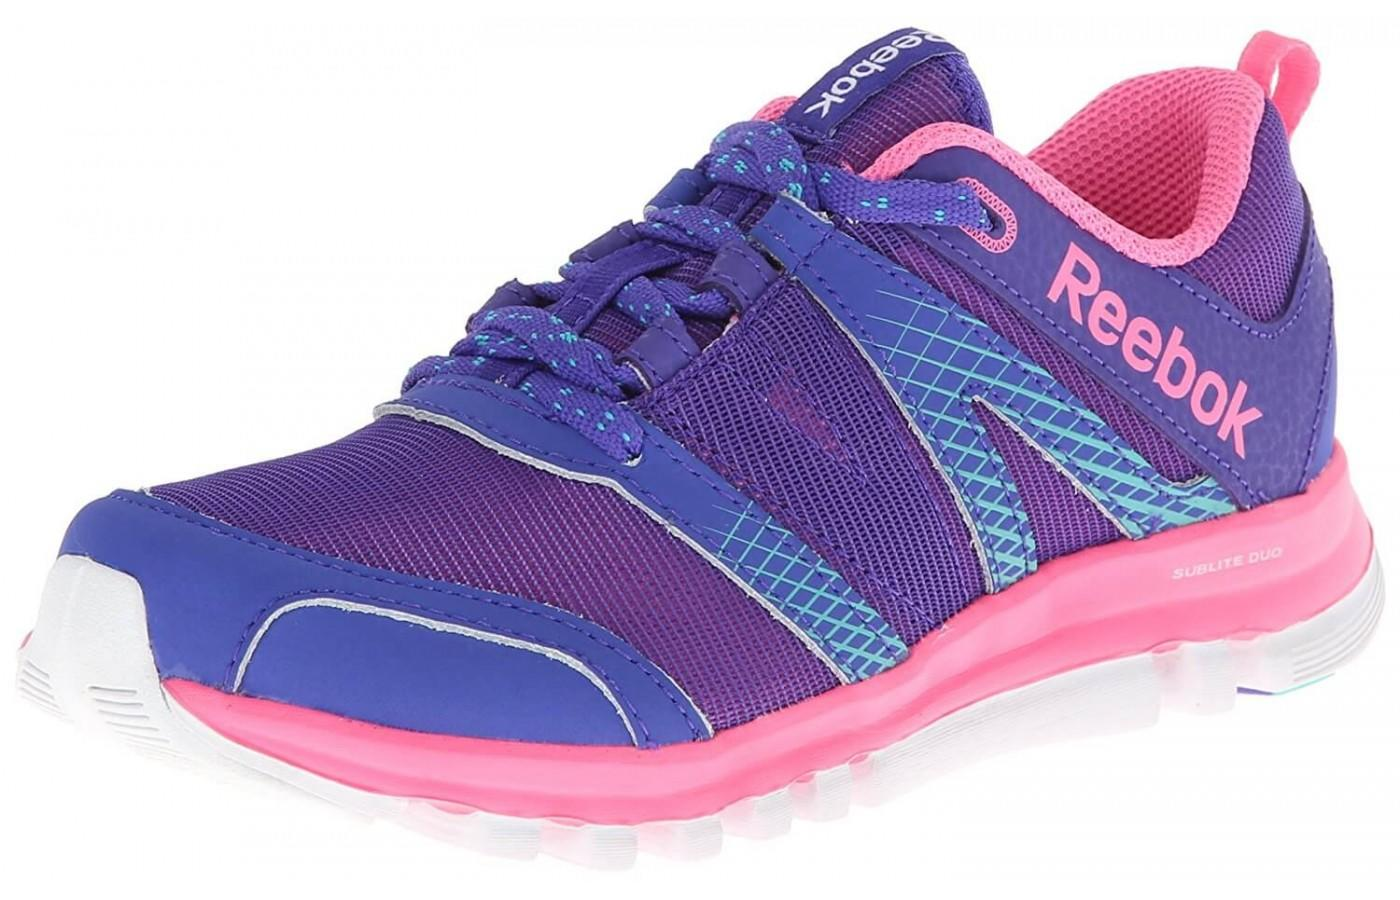 The woman's shoe offers more vibrant color options